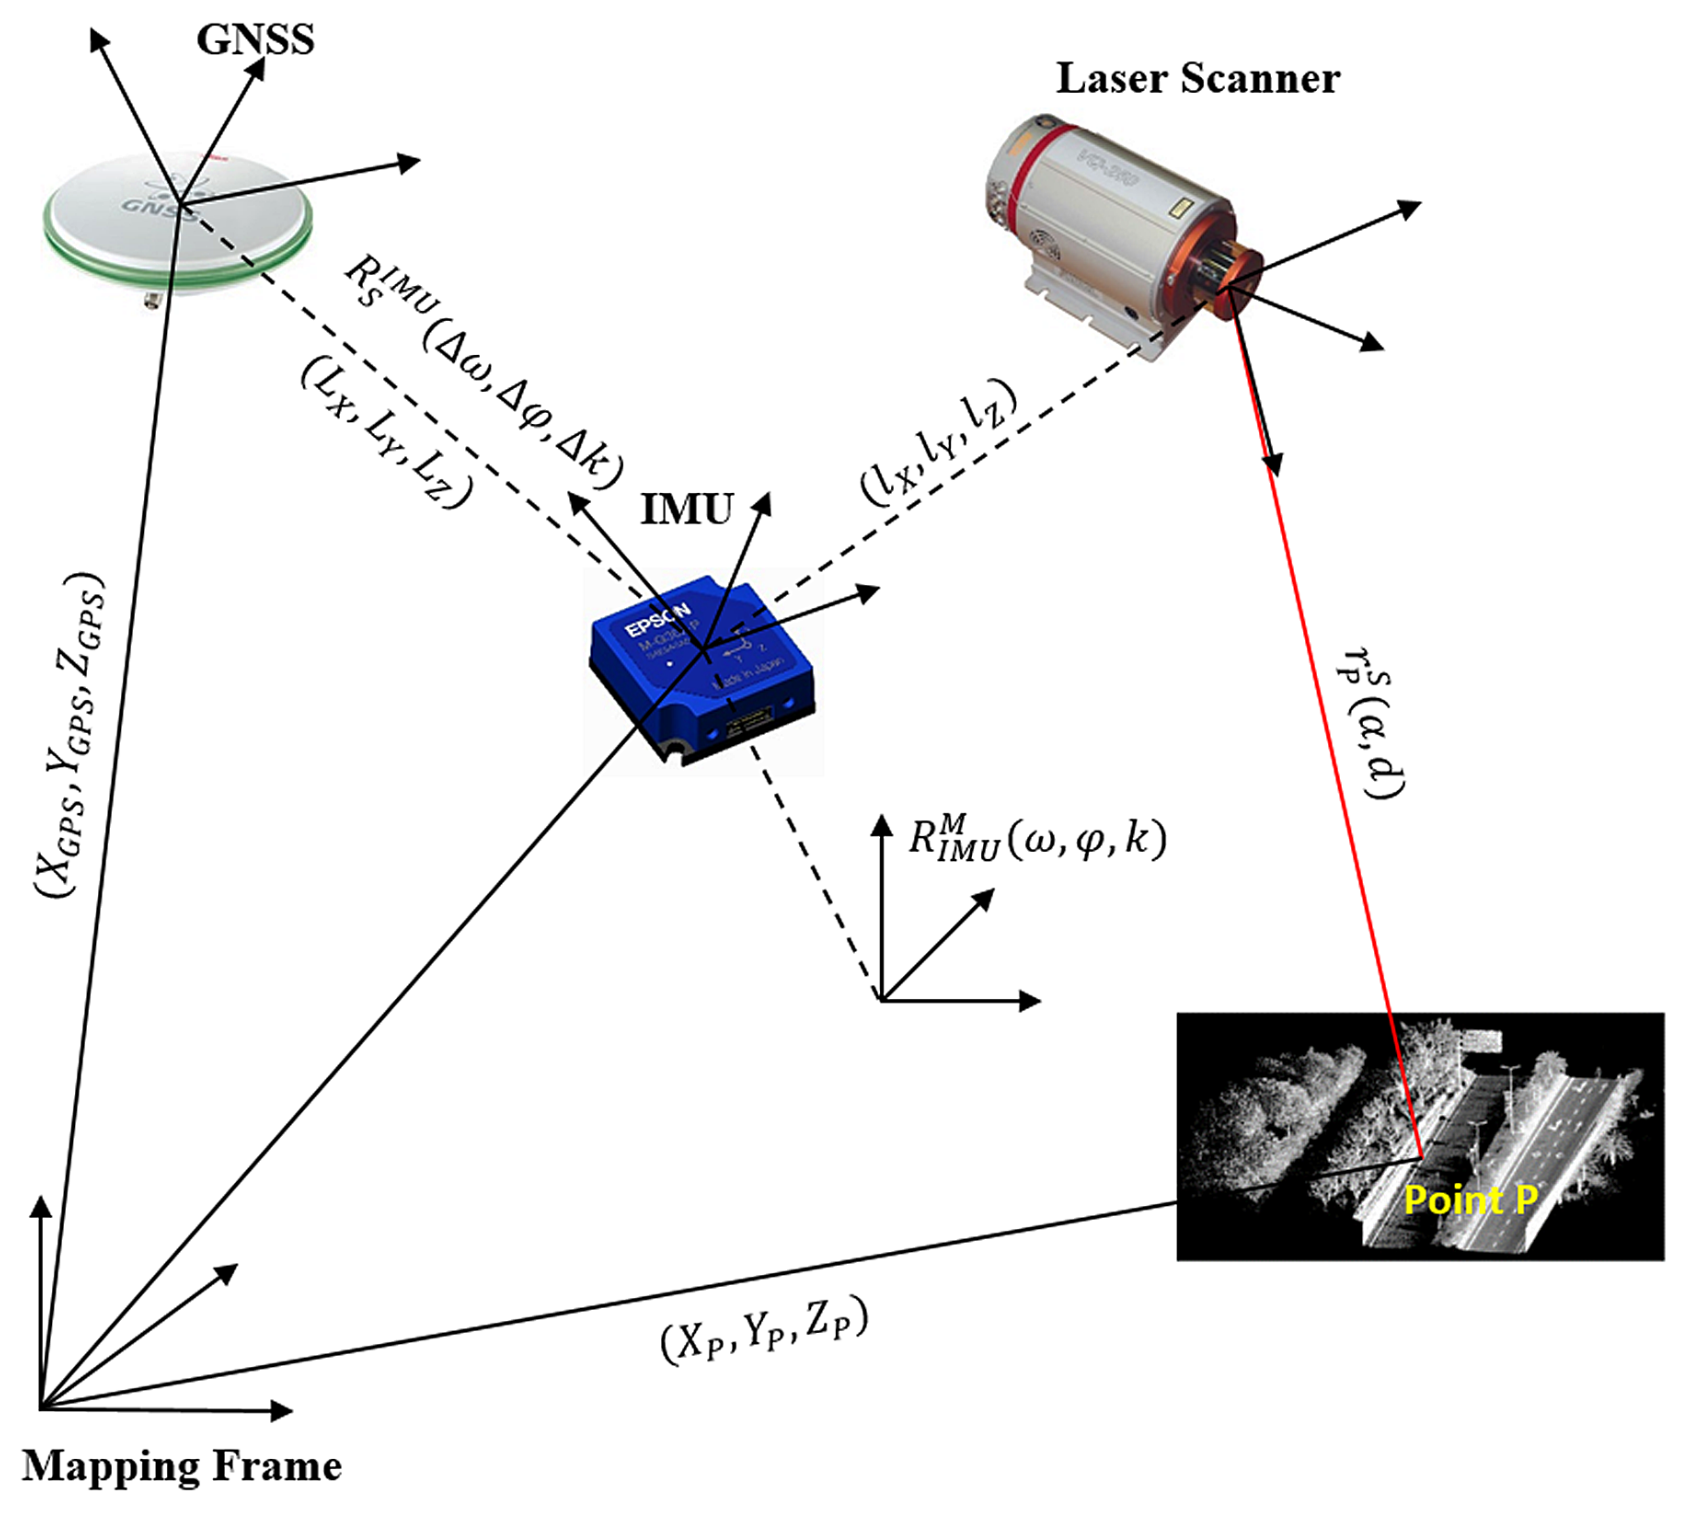 Remote Sensing Free Full Text Mobile Laser Scanned Point Clouds Rectifier With Capacitor Filter Public Circuit Online Remotesensing 10 01531 G003